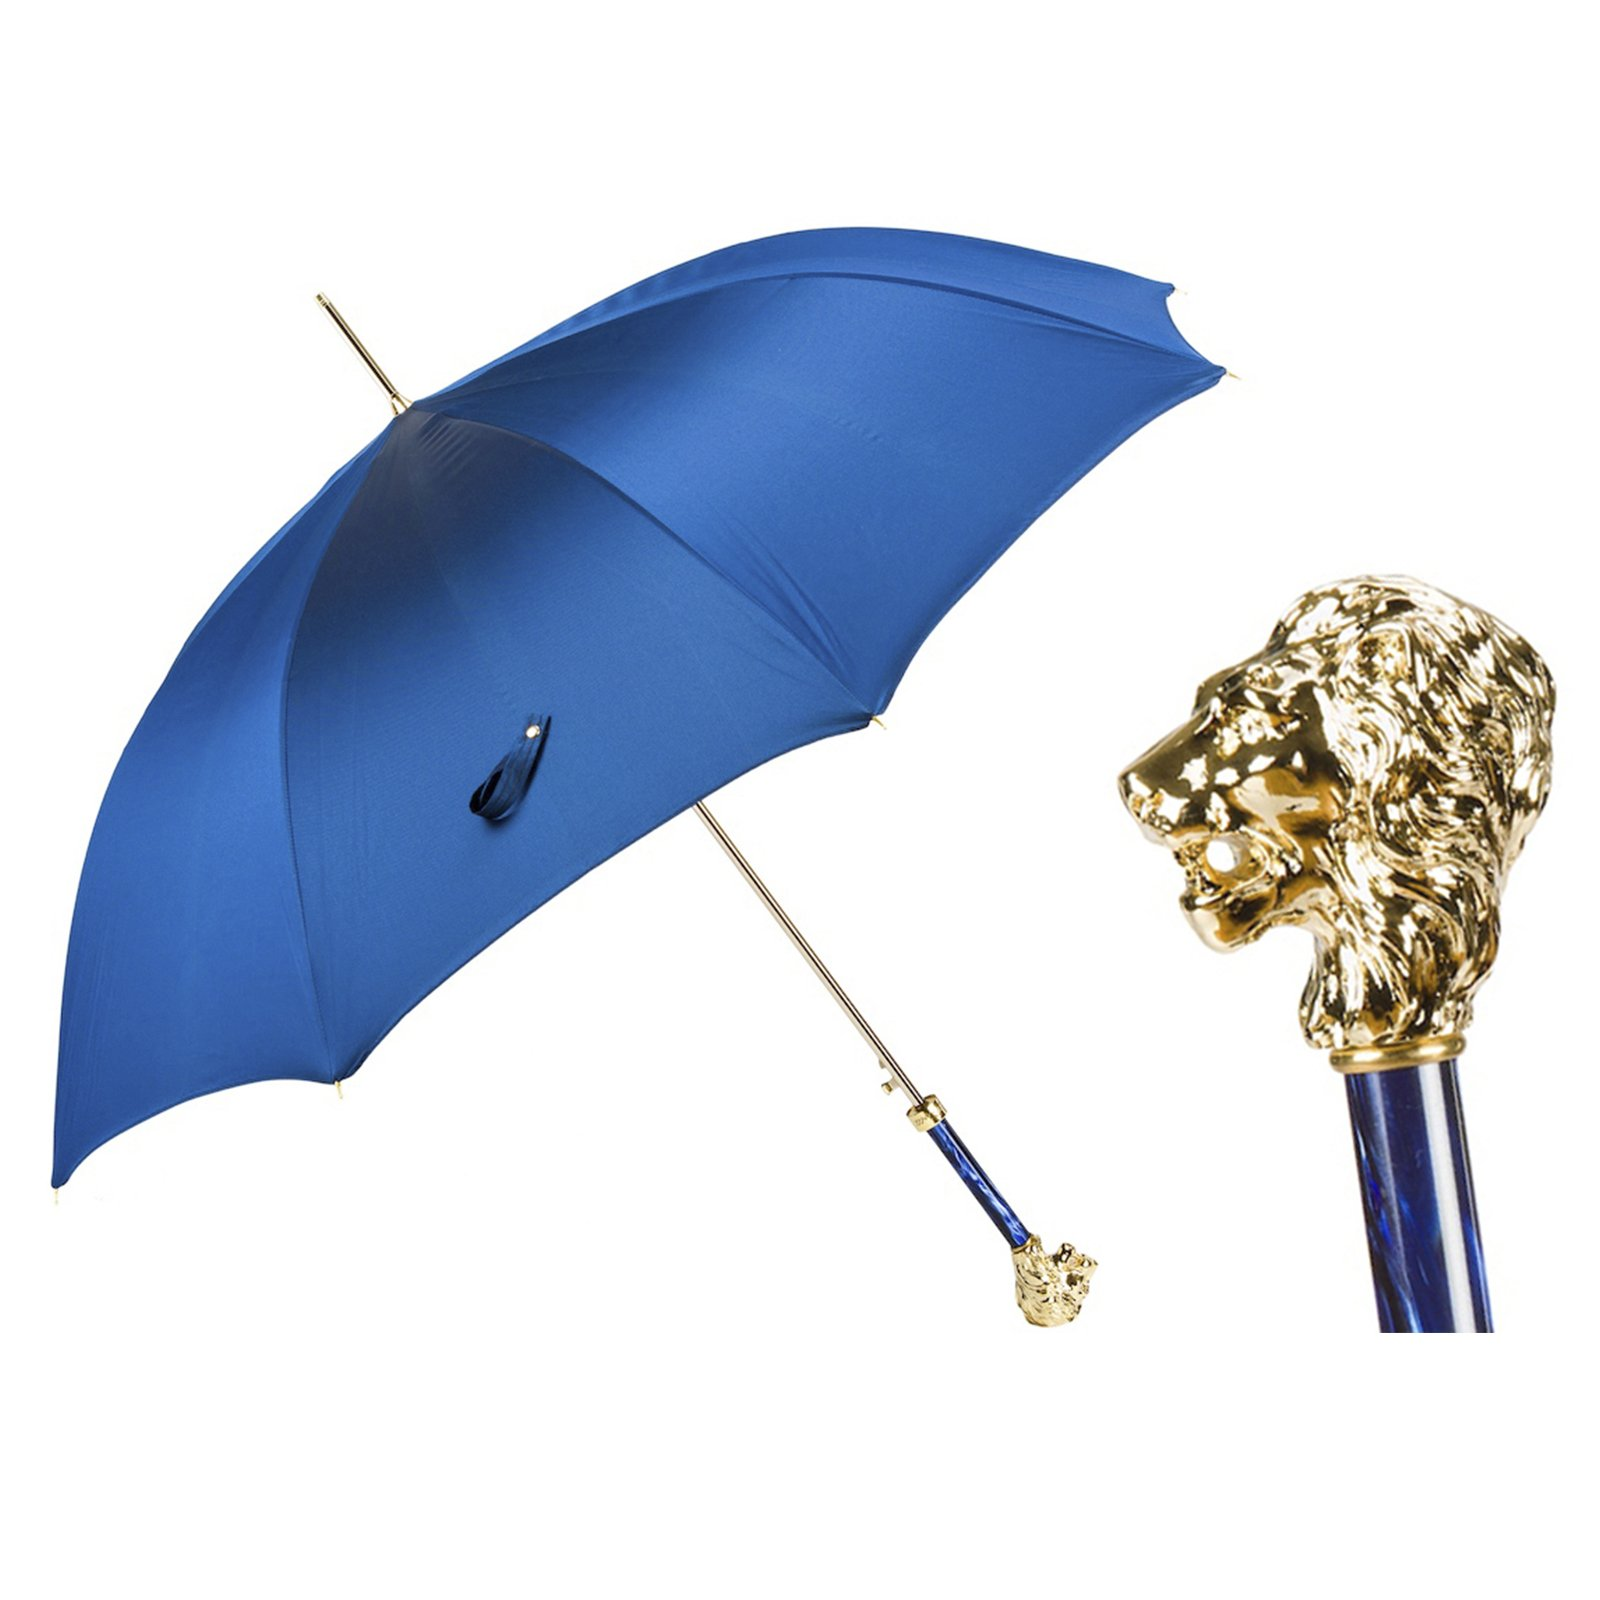 Pasotti Ombrelli Golden Lion Walking Stick Umbrella W37PB